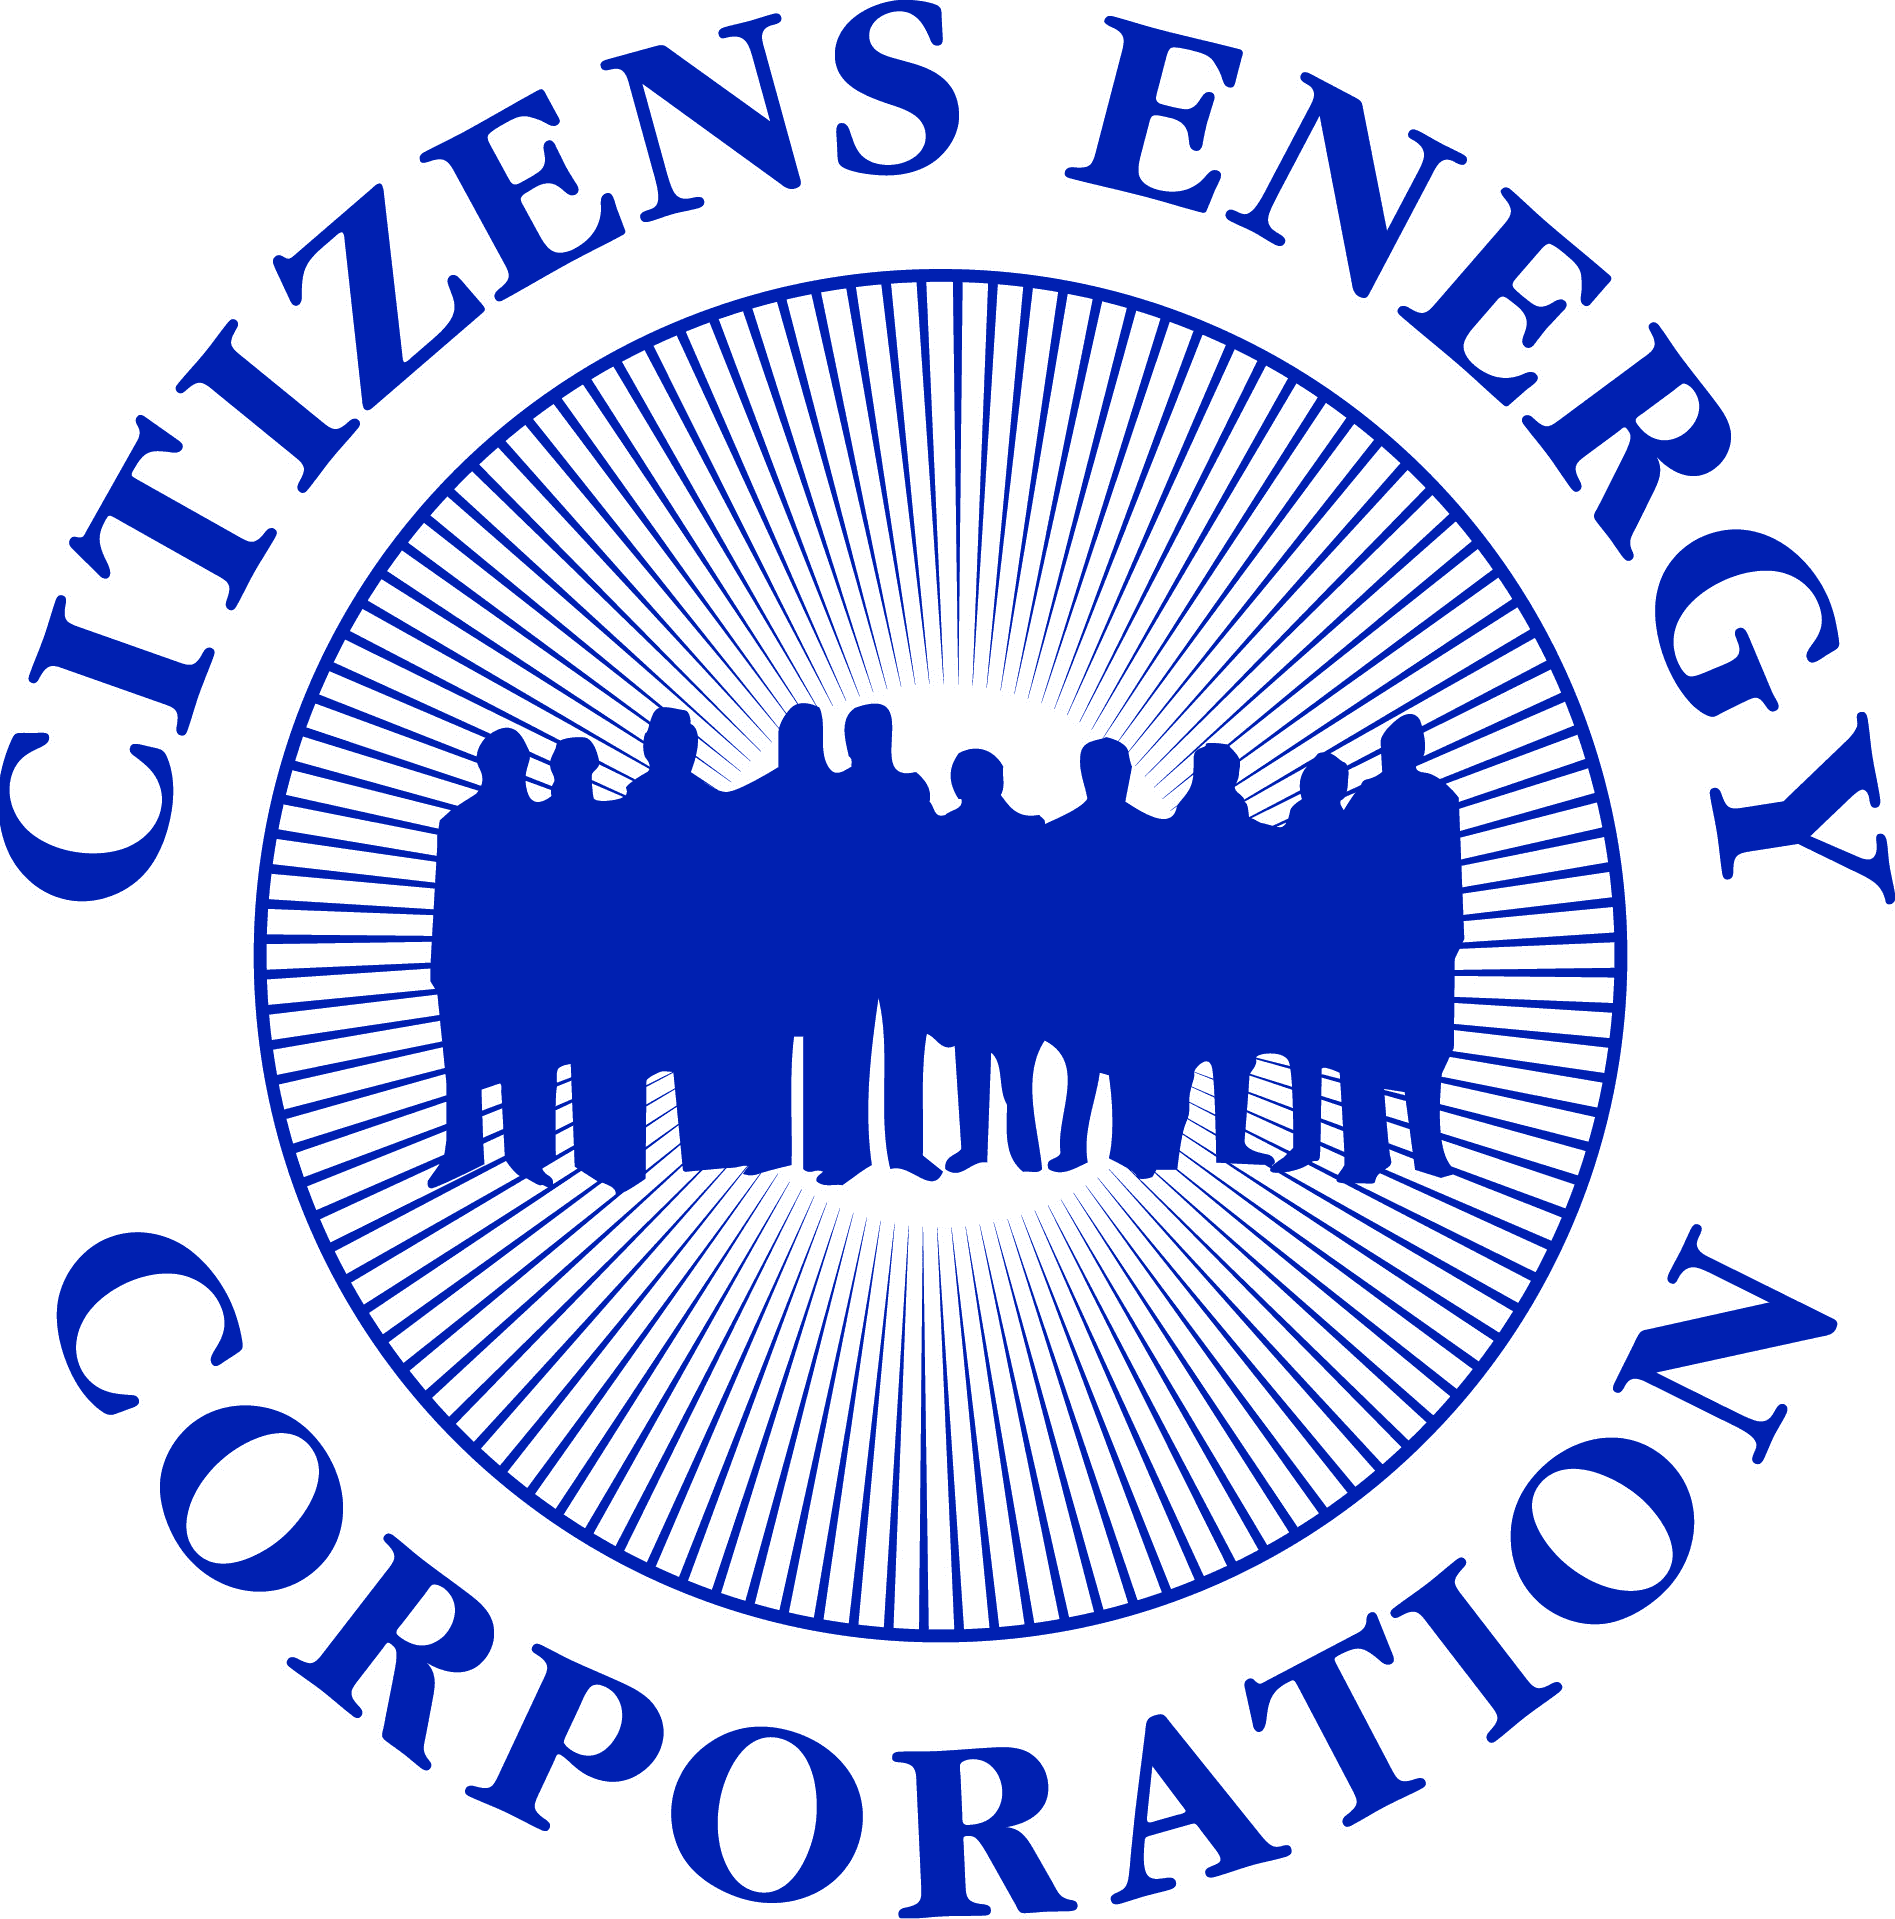 Citizen's Energy